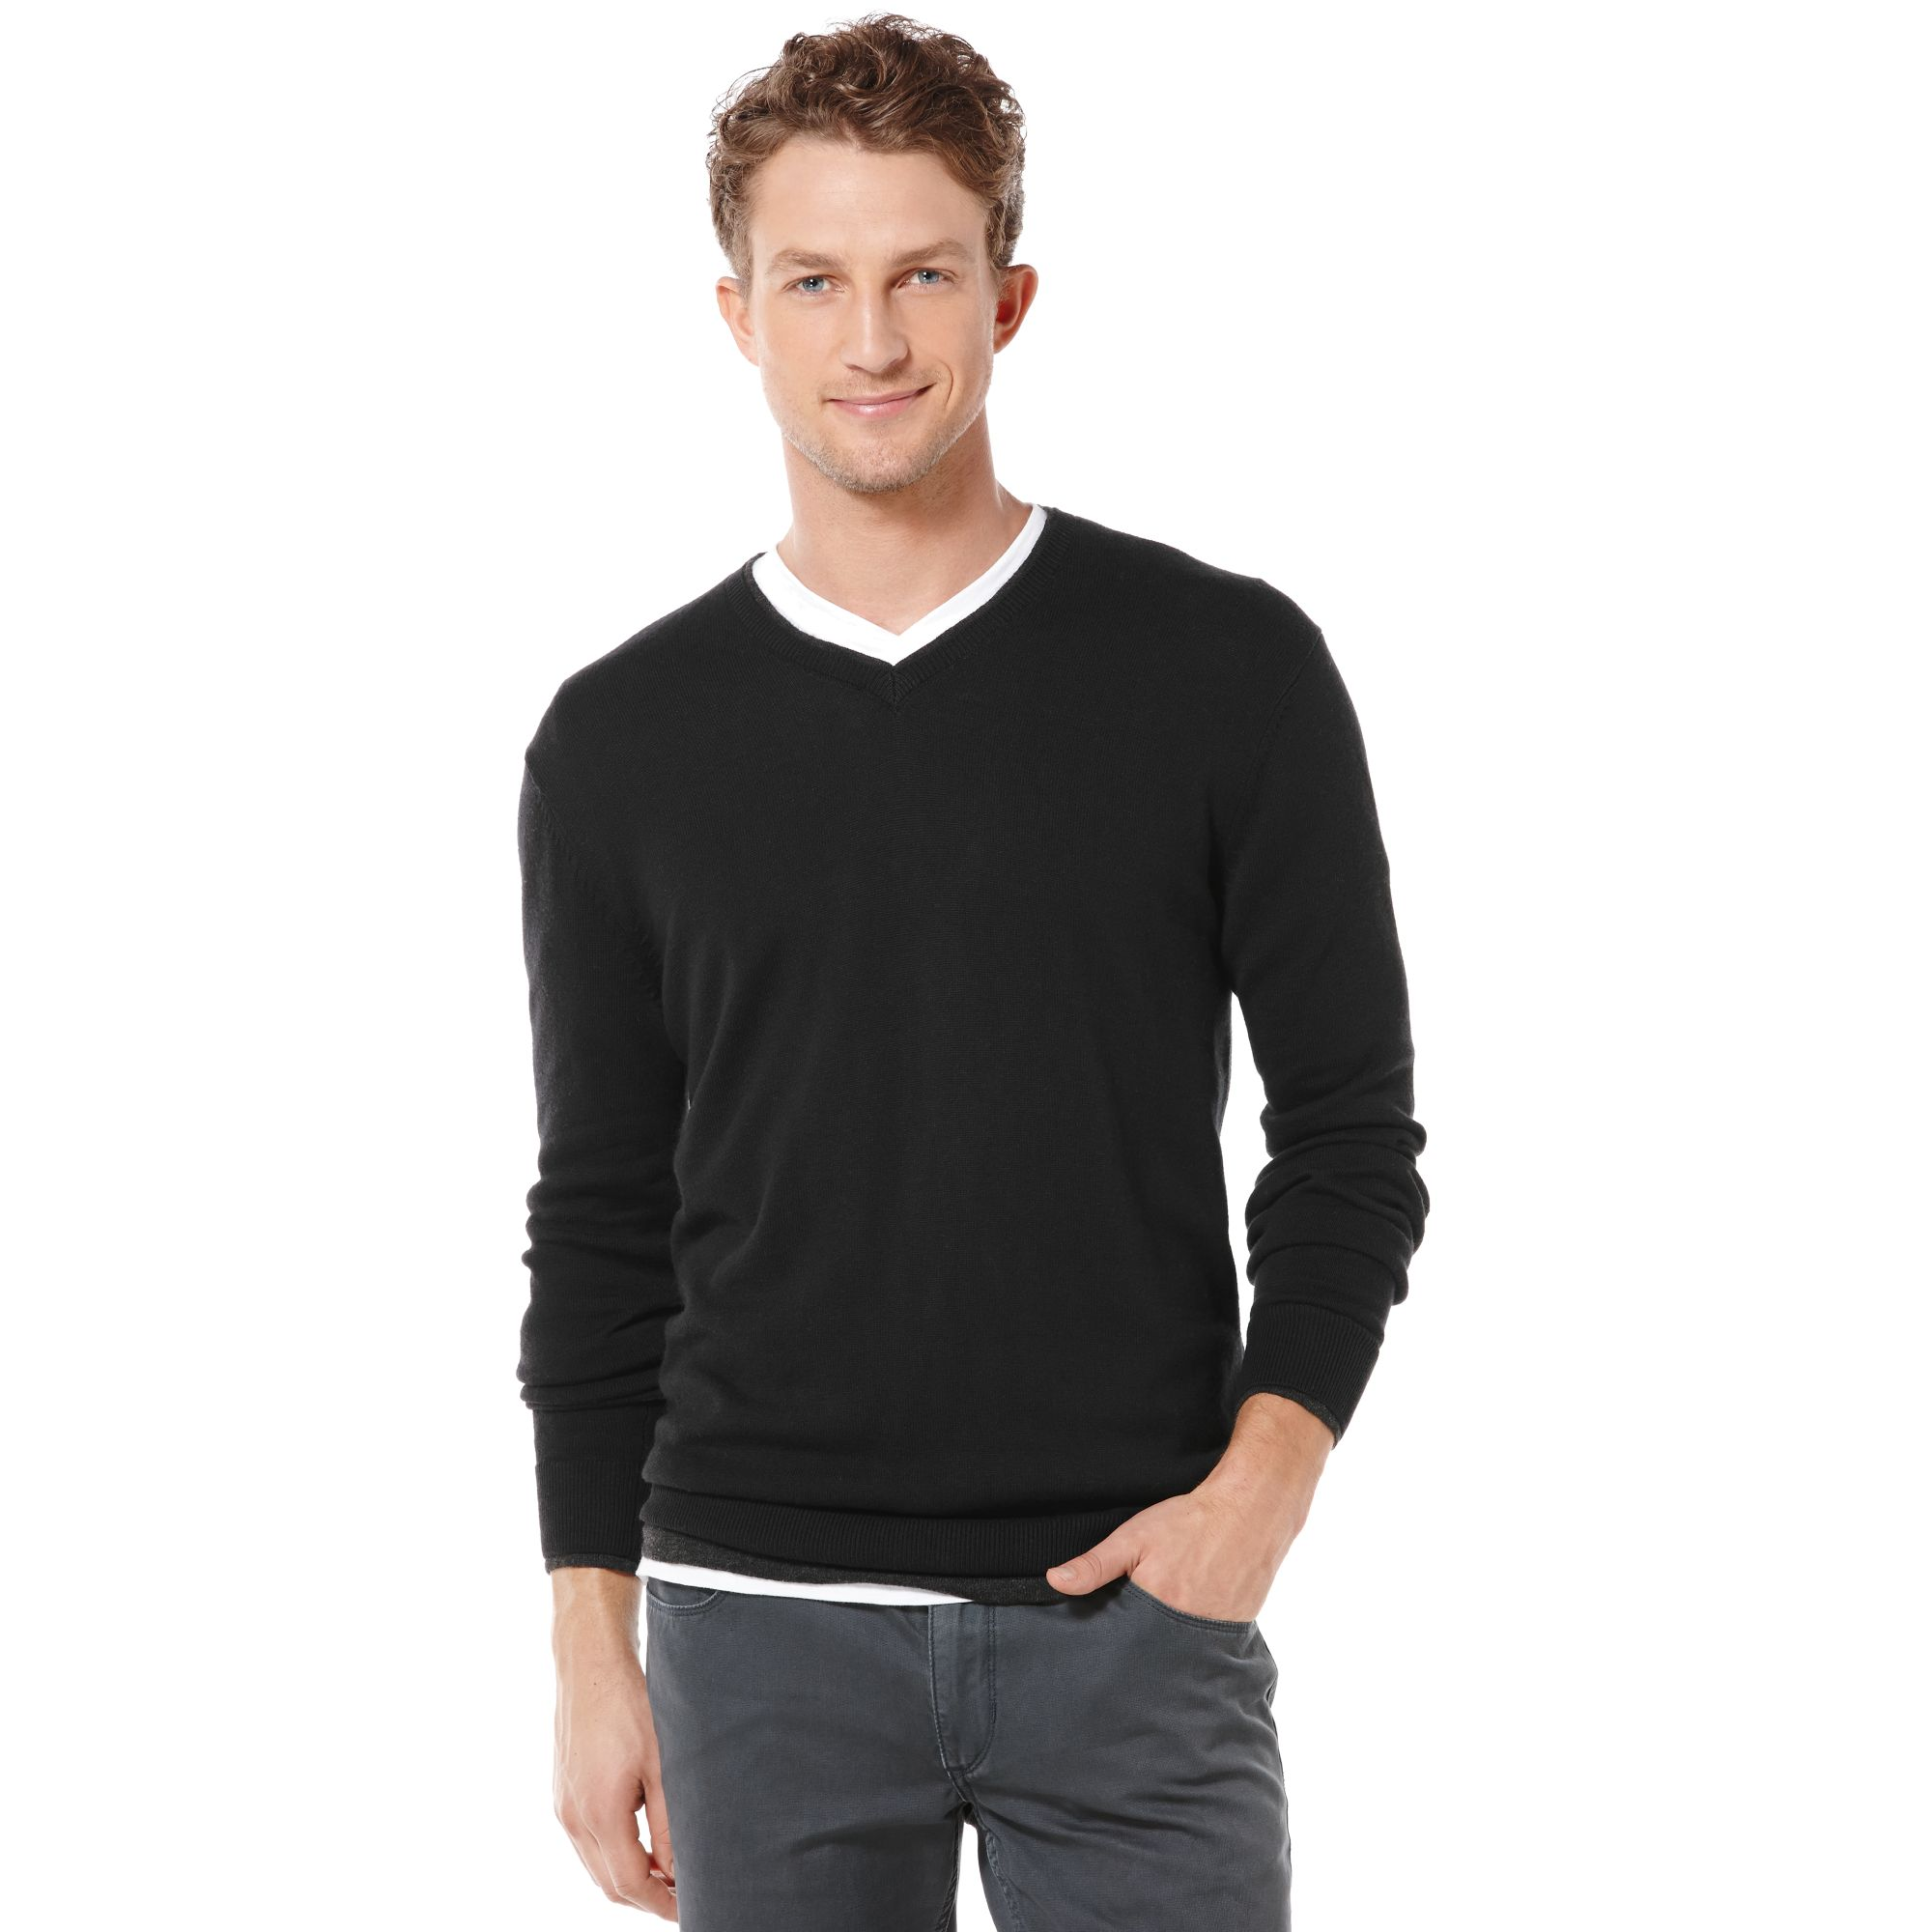 Lyst - Perry Ellis Tipped Vneck Solid Sweater in Black for Men 6c294dd37